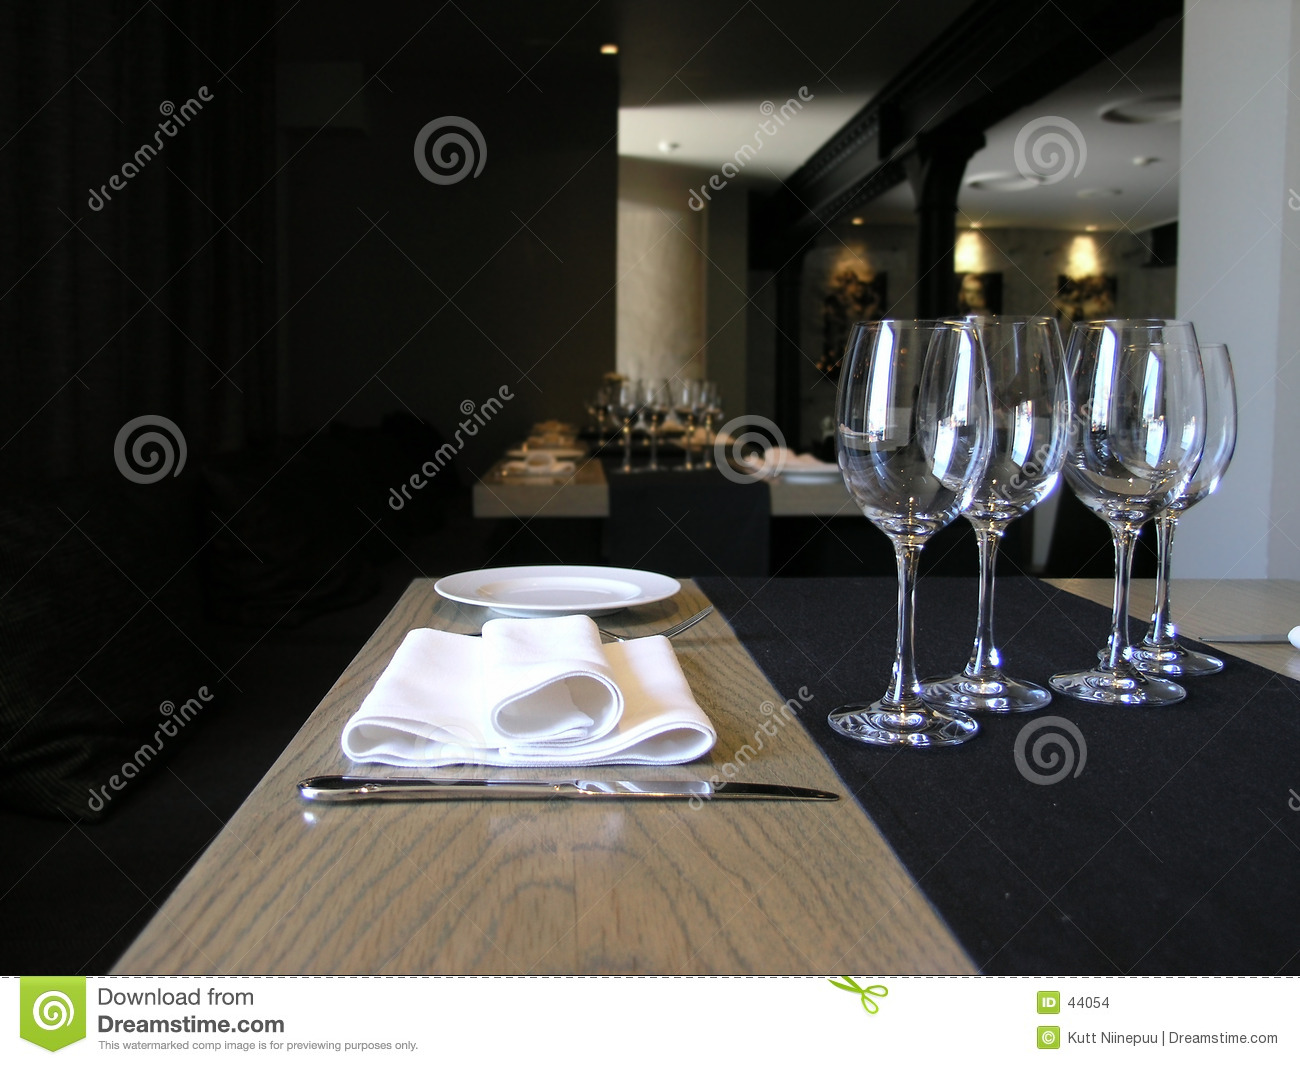 Welcome to our Restaurant!